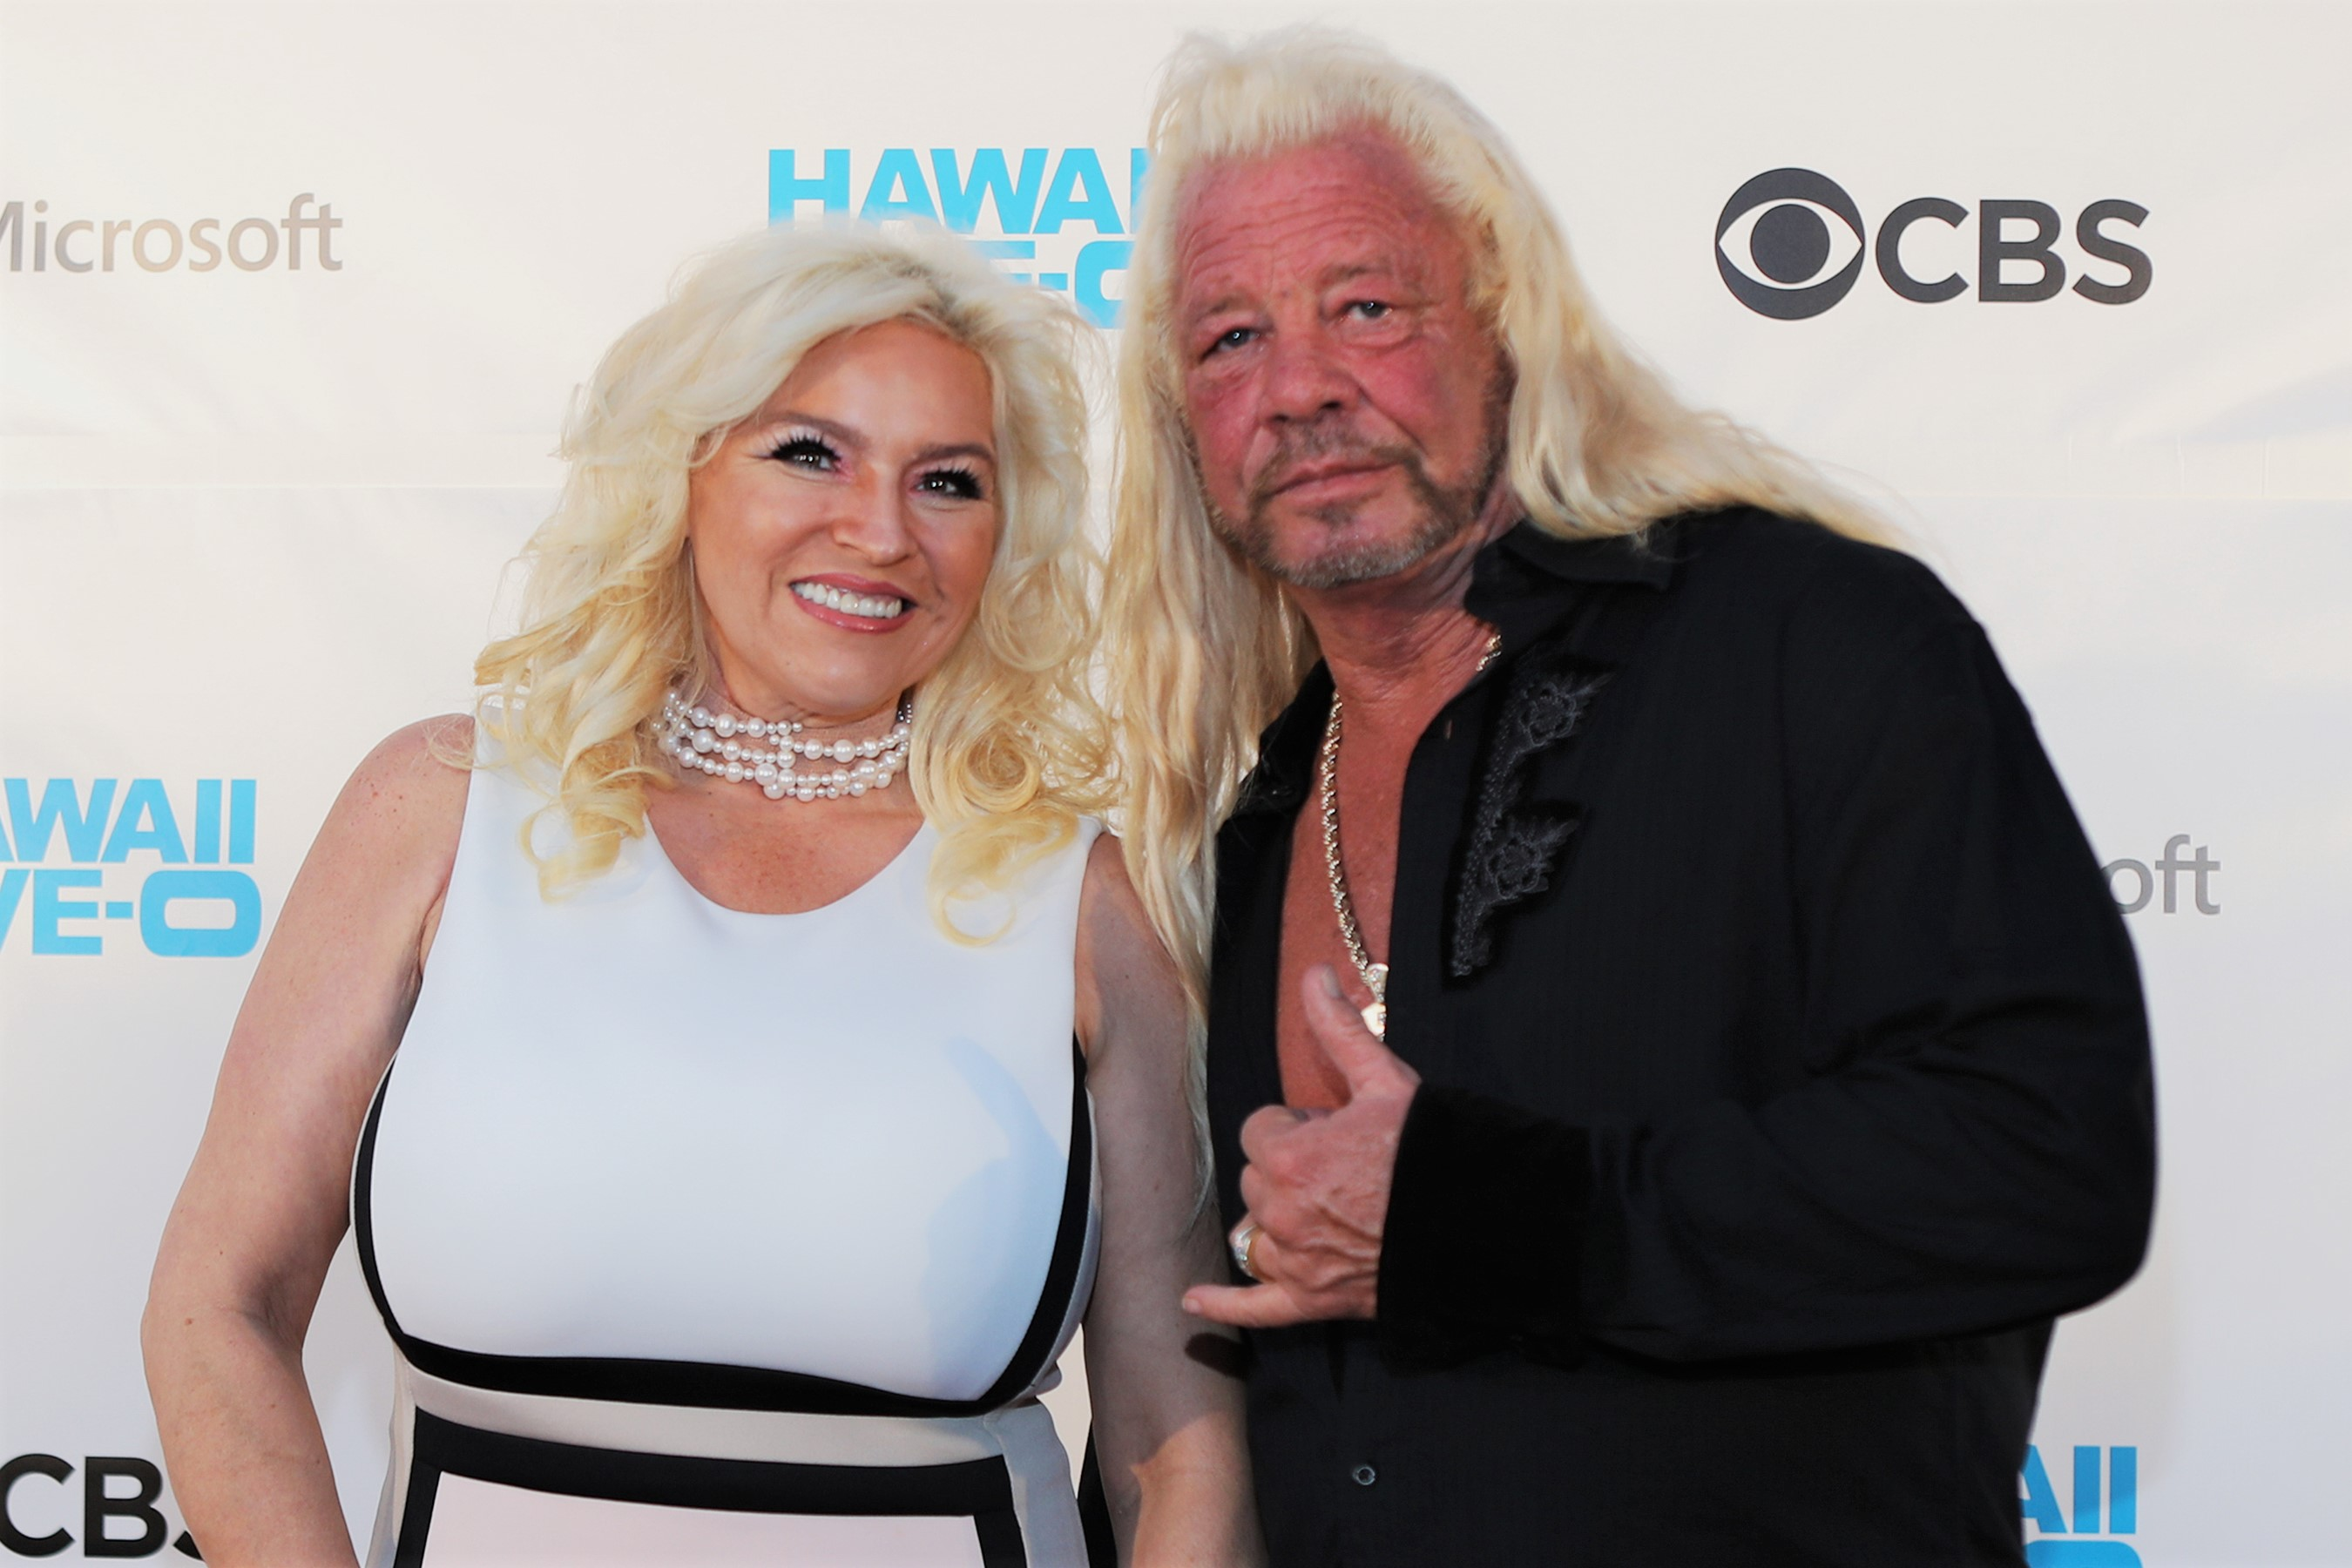 Dog the Bounty Hunter Star Beth Chapman Dies at 51: 'She Hiked the Stairway to Heaven'